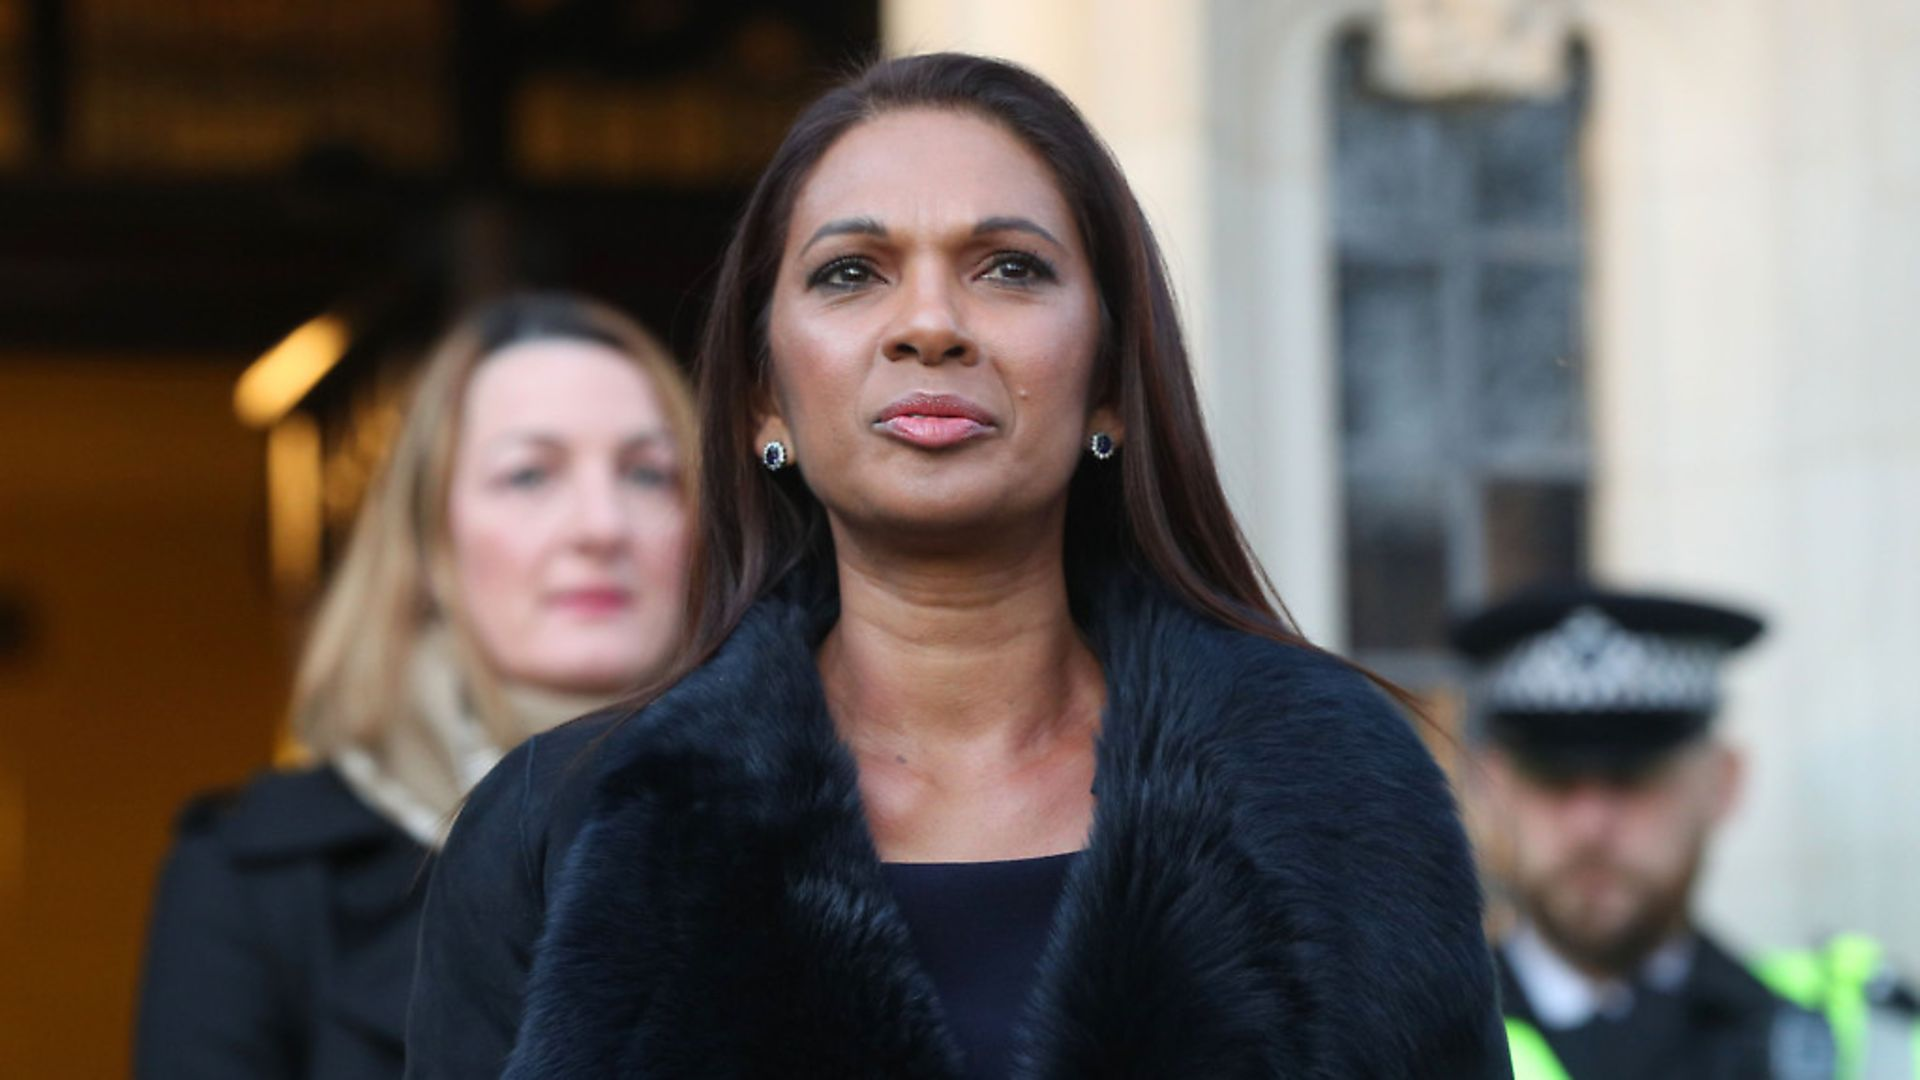 Gina Miller arriving at The Supreme Court, London where Britain's most senior judges will ruled Theresa May had the power to trigger the formal process for the UK's exit from the European Union. - Credit: PA Archive/PA Images